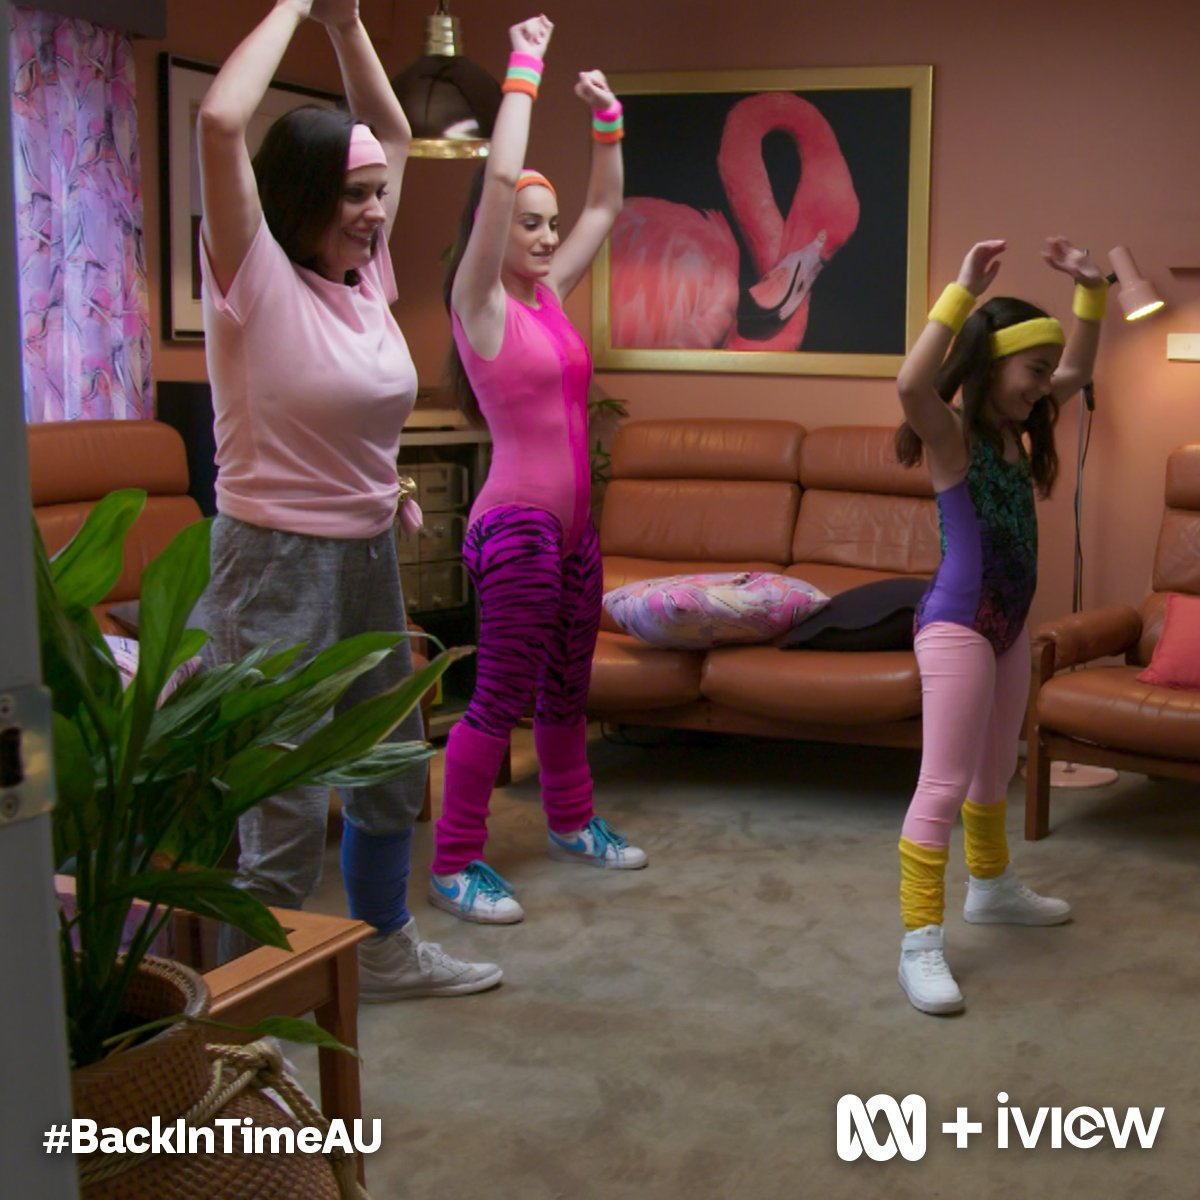 The Ferrone Family Get Physical In Their Lounge Room With An 80s Aerobic Workout Video Backintimeau